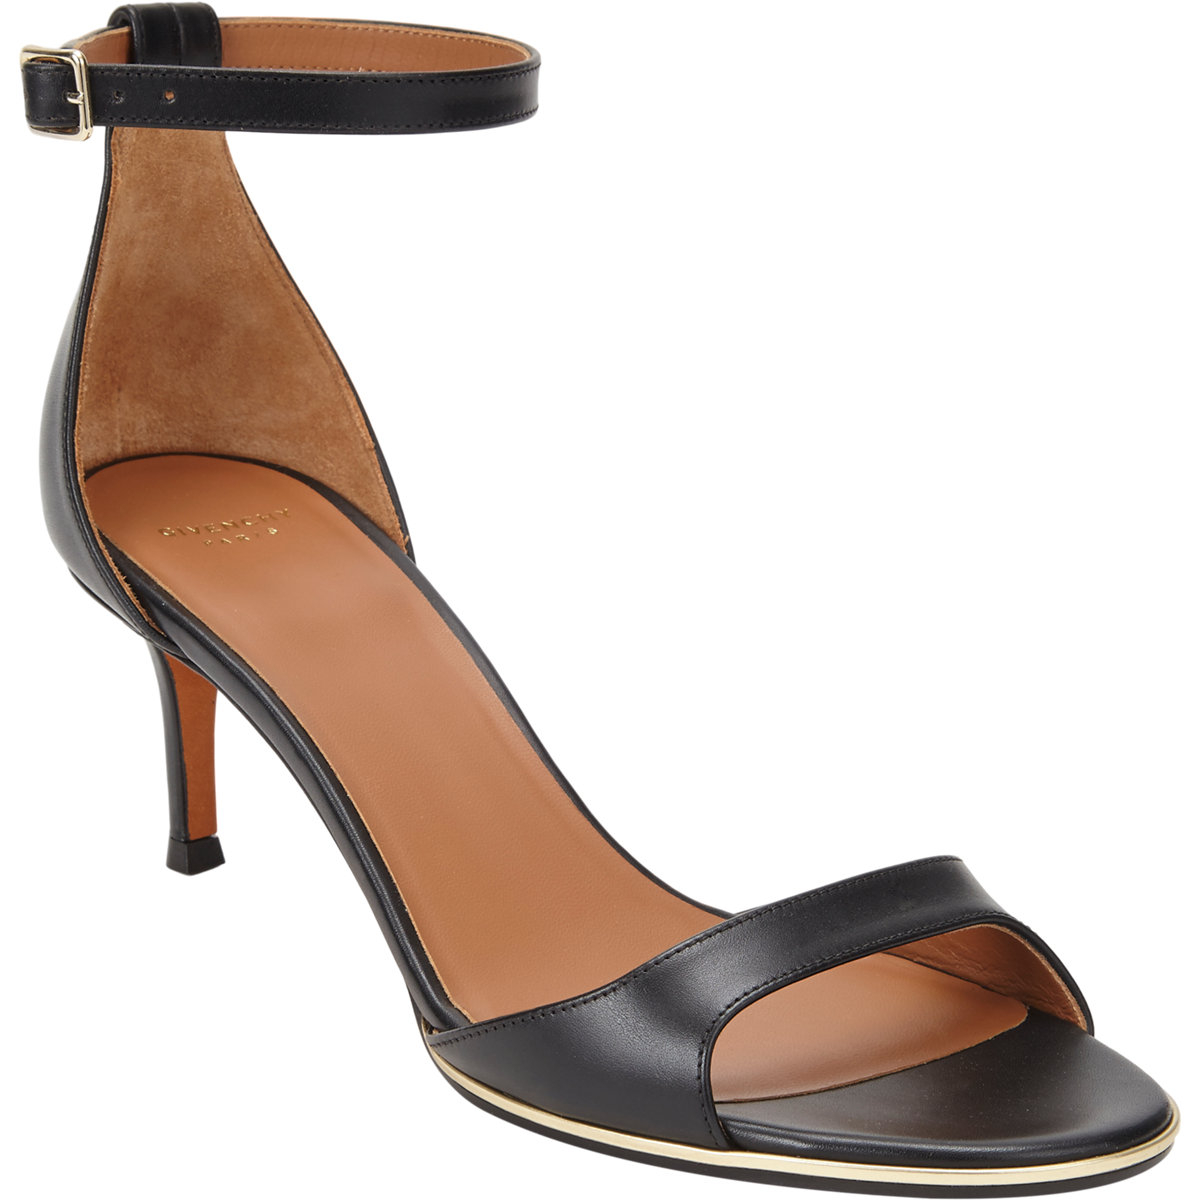 3b898f304b0 Lyst - Givenchy Curved-Band Ankle-Strap Sandals in Black